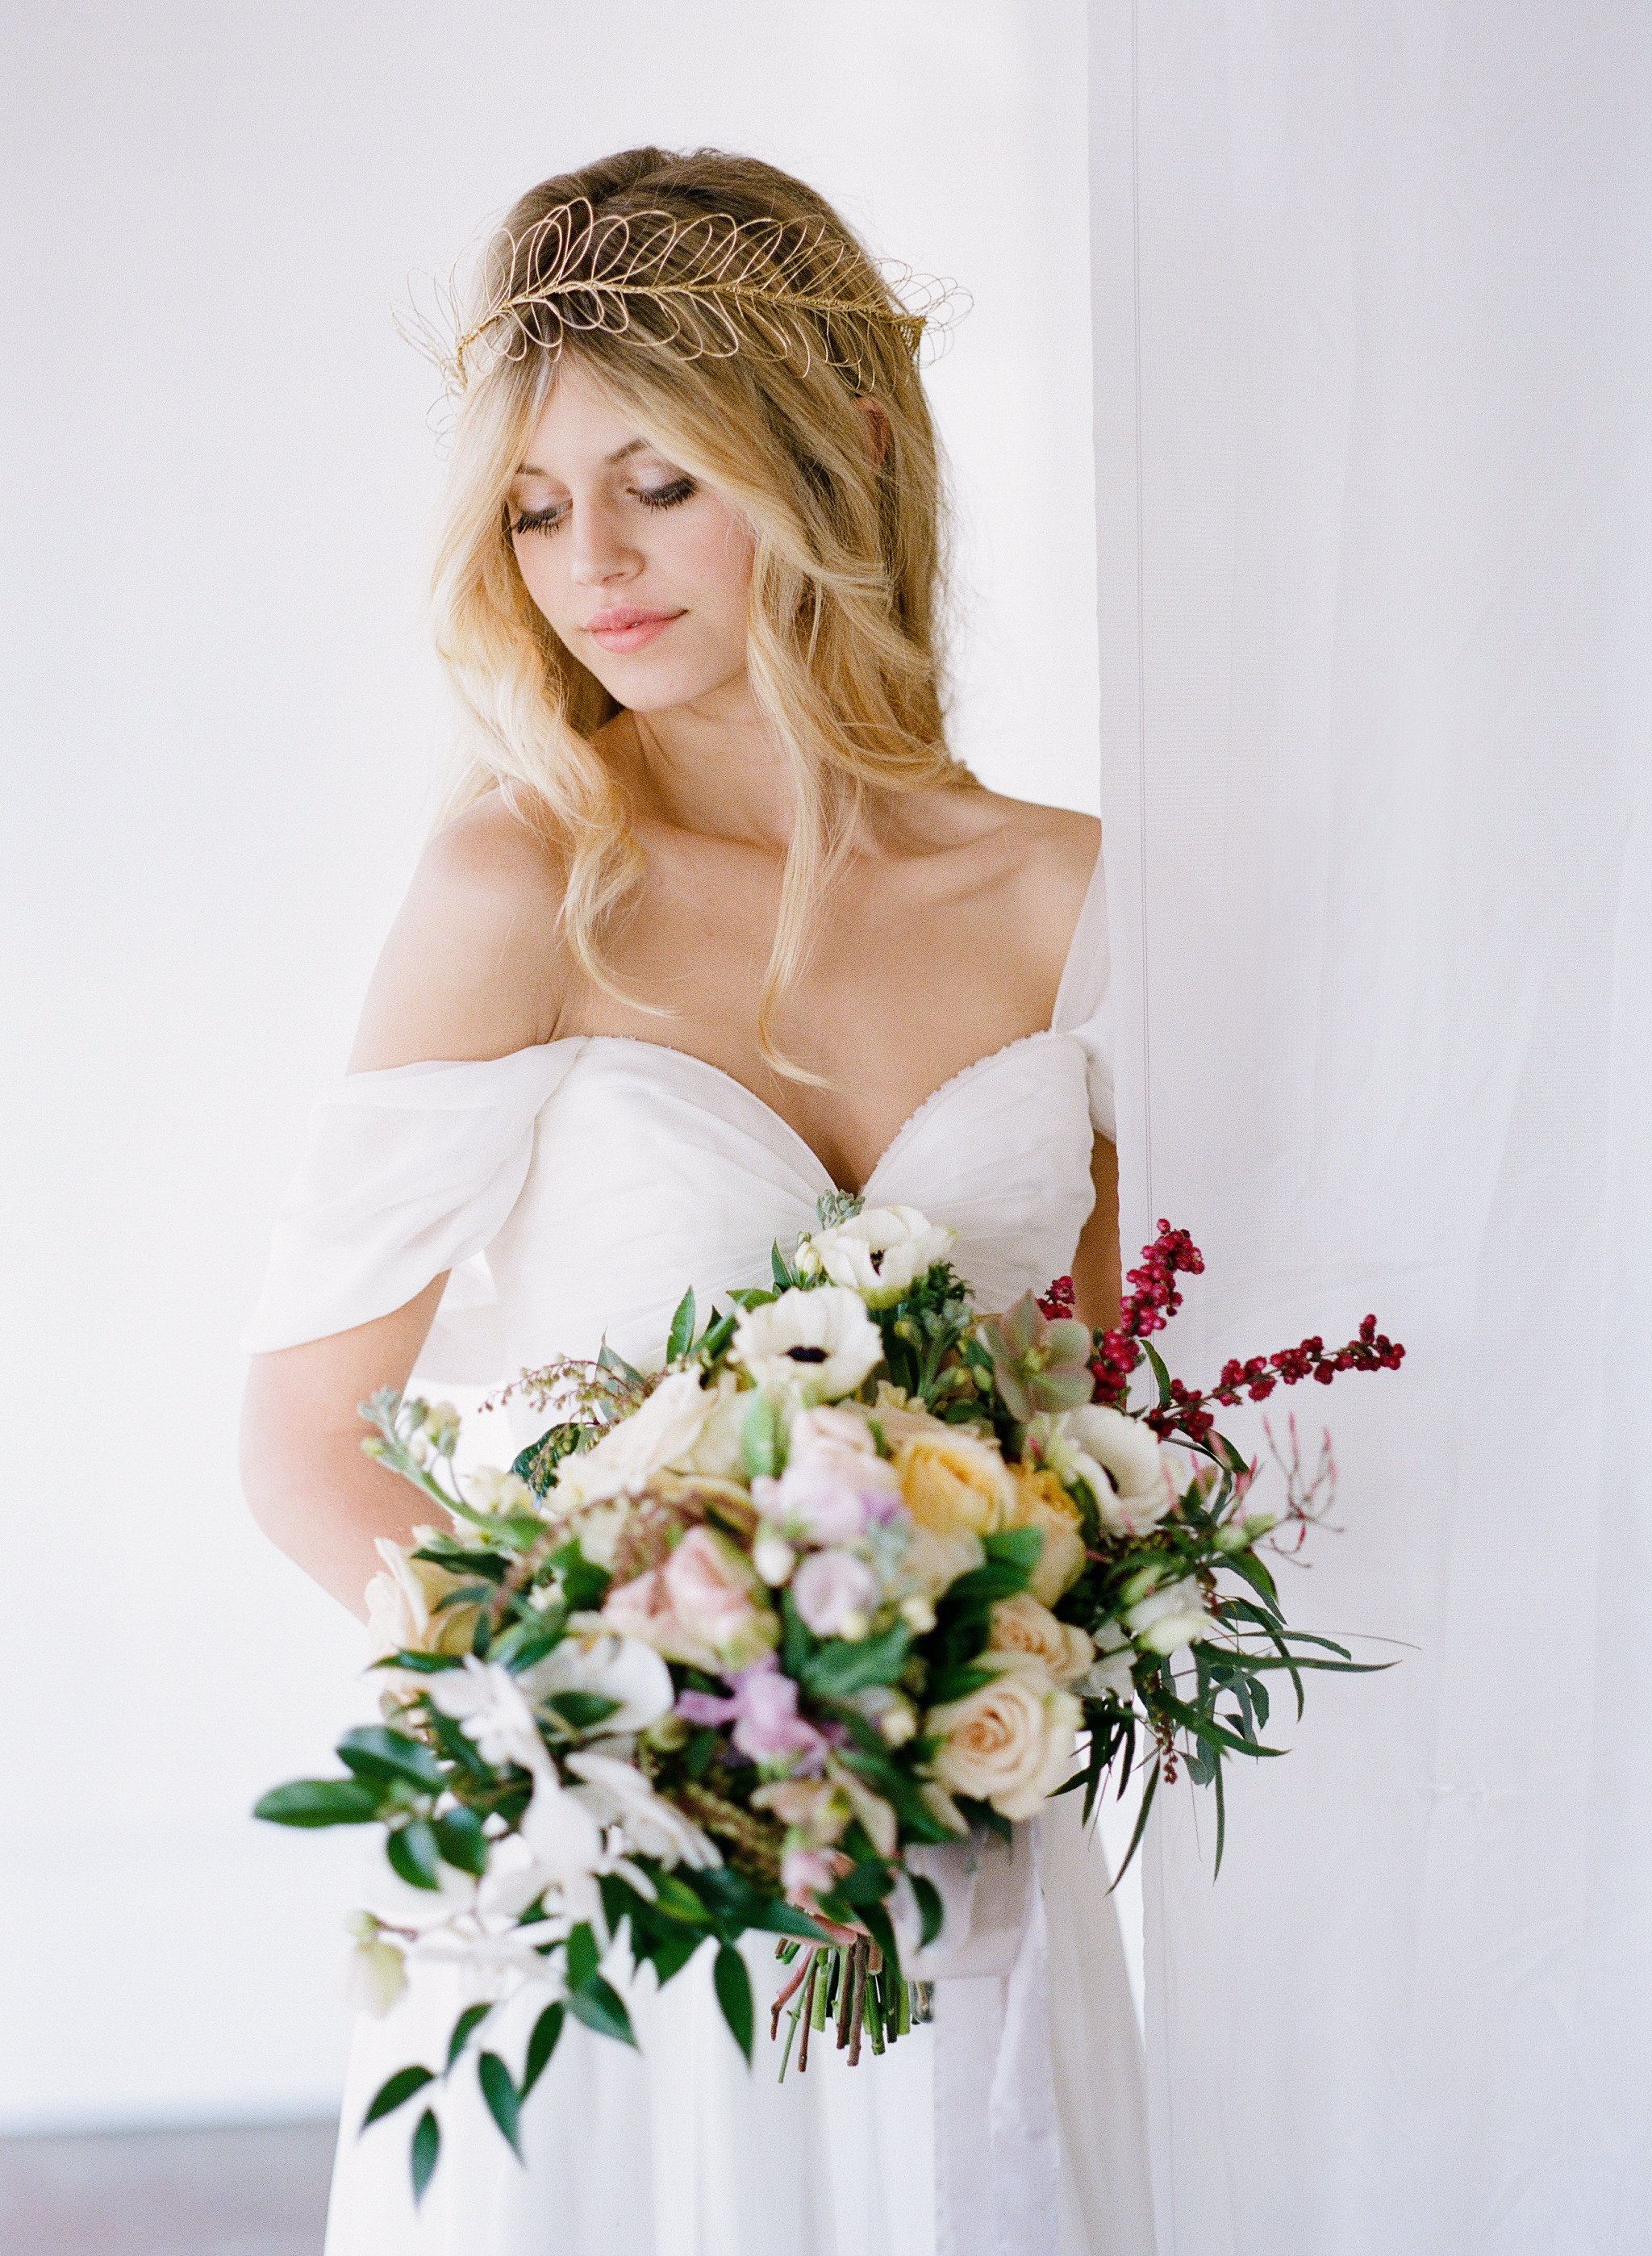 Styled Shoot at Ardor-Web Images-0001.jpg